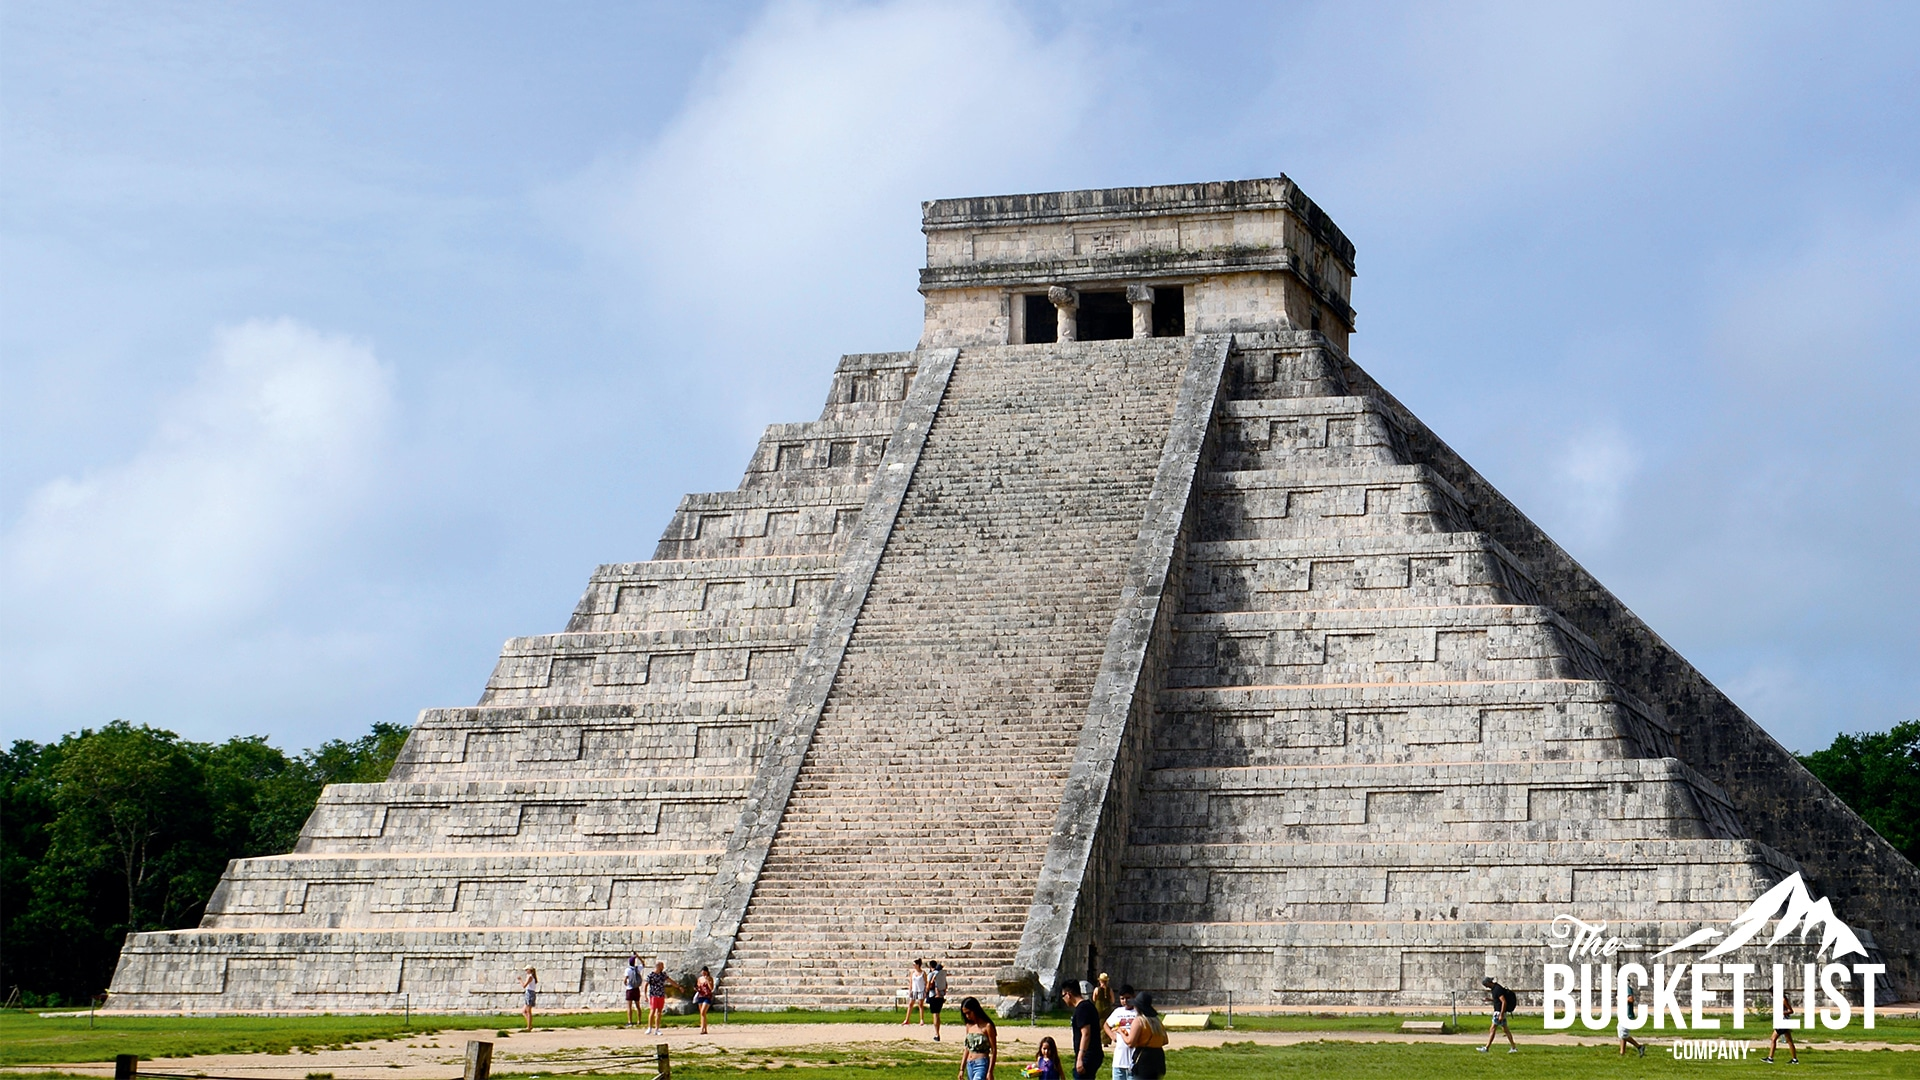 a temple that can be found in Chichén Itzá, Mexico